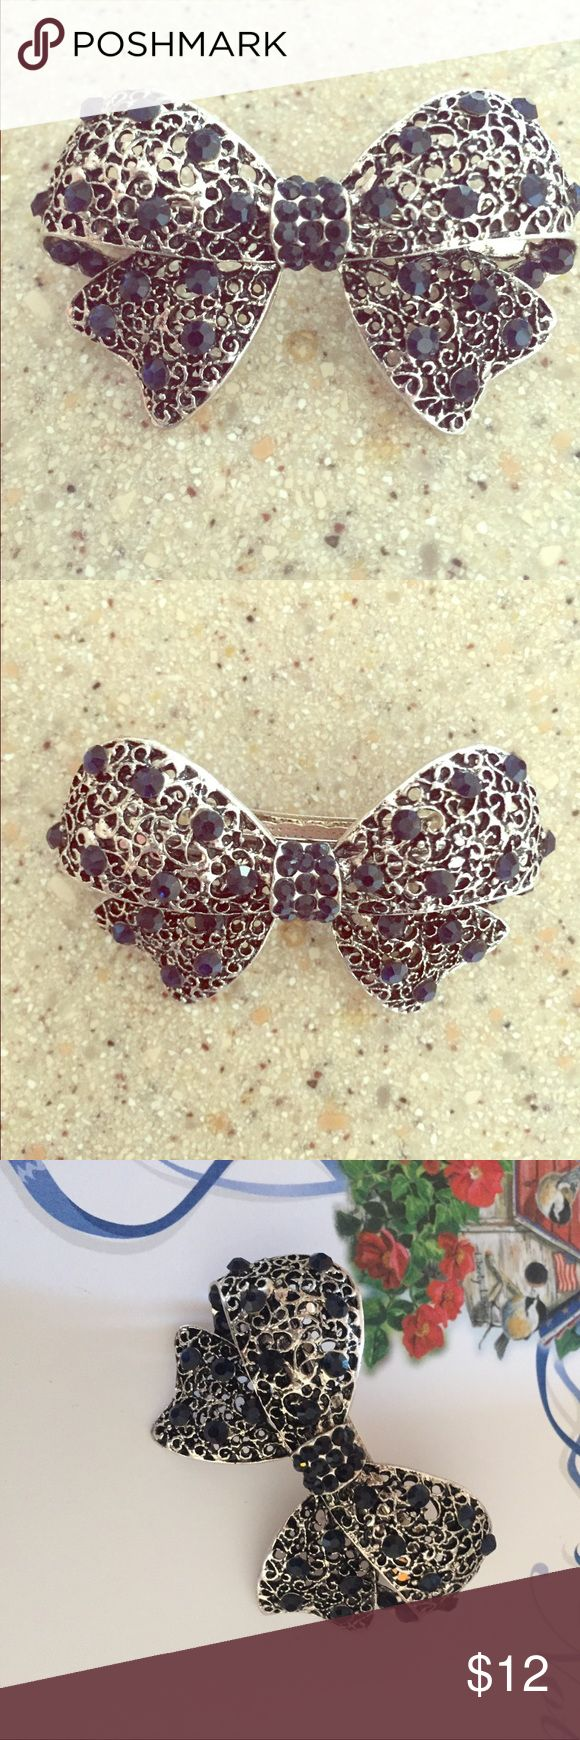 💋 New silver black rhinestone bow hair clip 💋 This is a new hair clip as seen in pictures it is a beautiful antique style silver bowl covered in the center with black rhinestones and then elegantly crafted with generous black rhinestones throughout the bow Accessories Hair Accessories